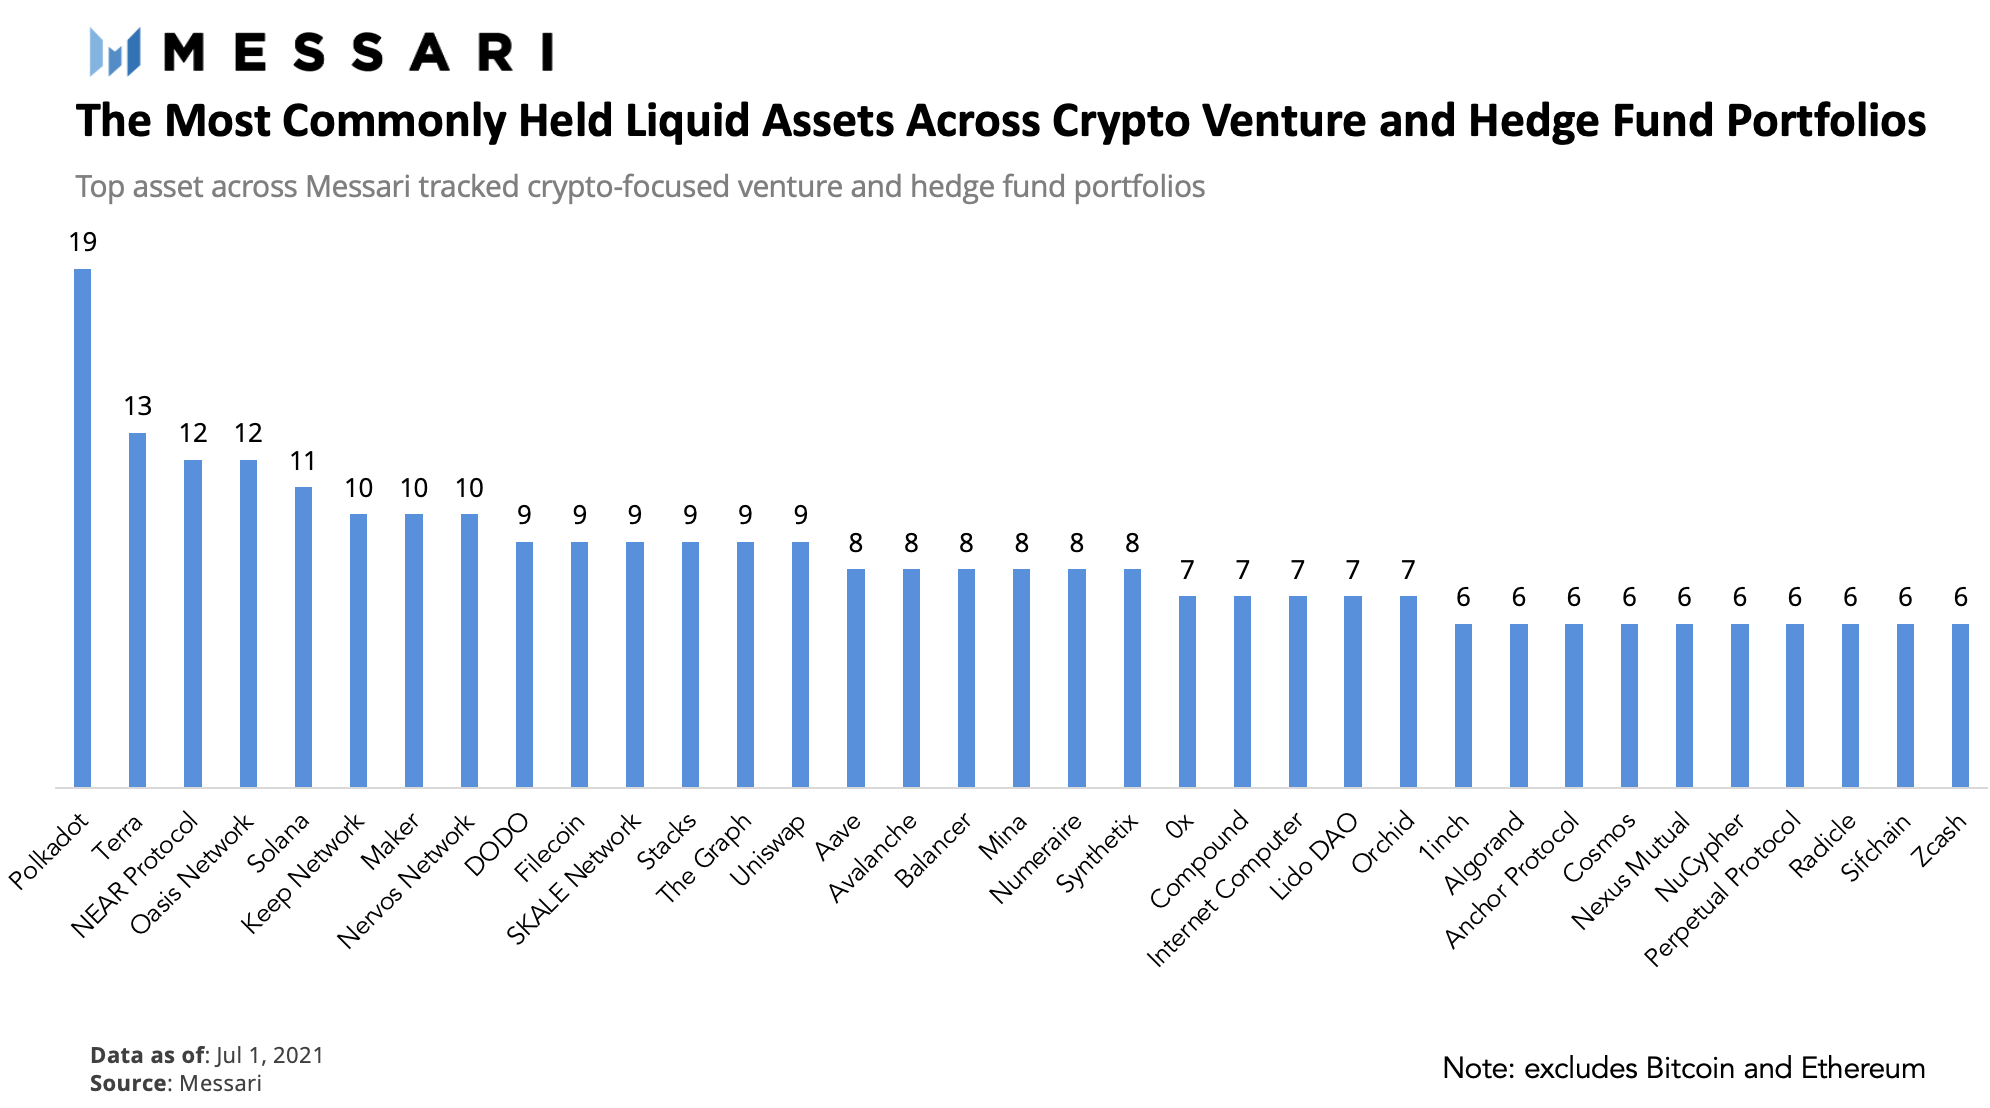 Most commonly held crypto assets across institutions.